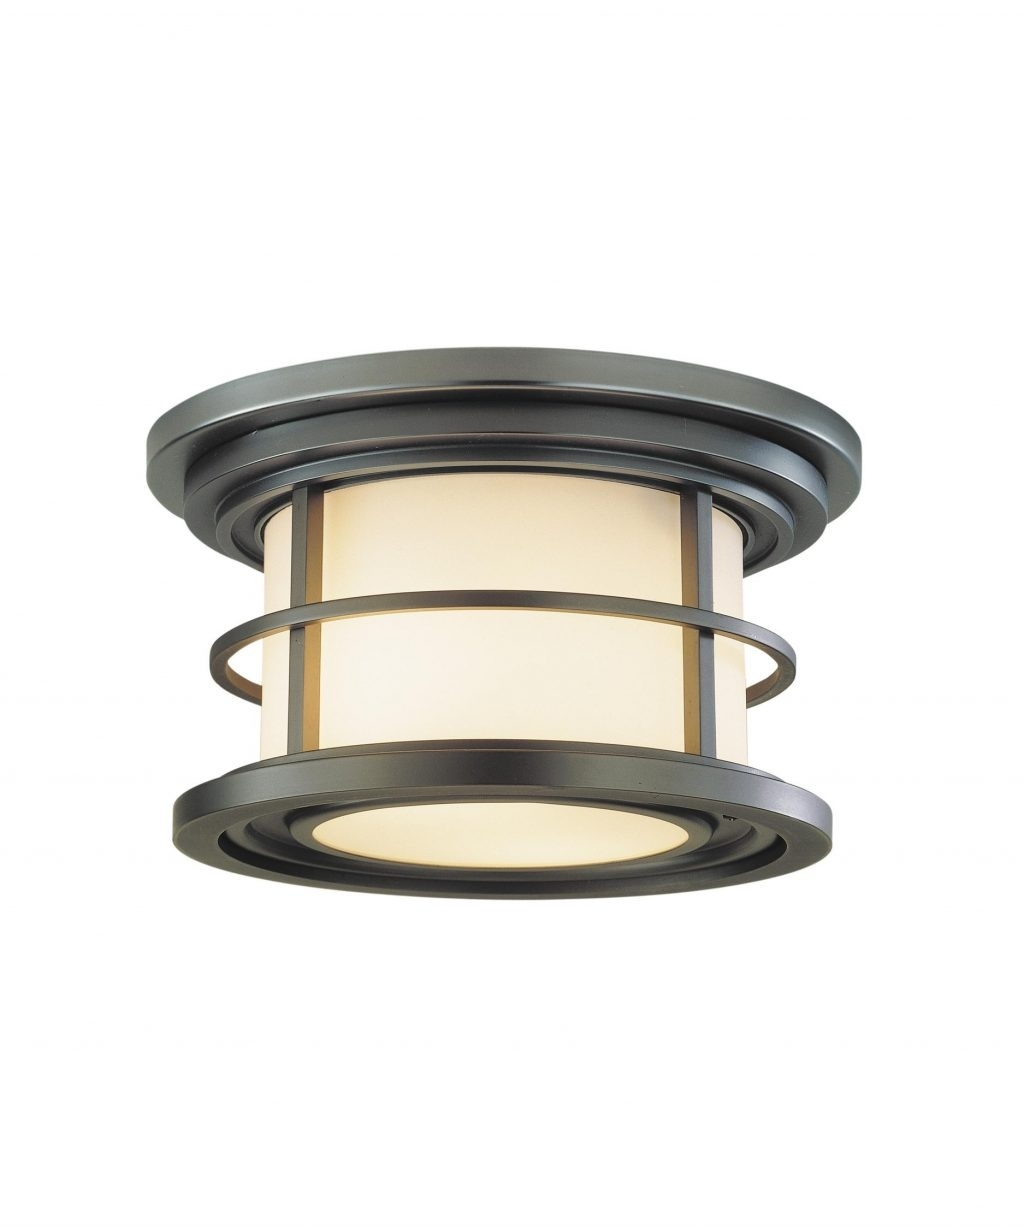 Porch Ceiling : Outdoor Led Ceiling Porch Lights With Outdoor Porch In Outdoor Led Porch Ceiling Lights (#14 of 15)